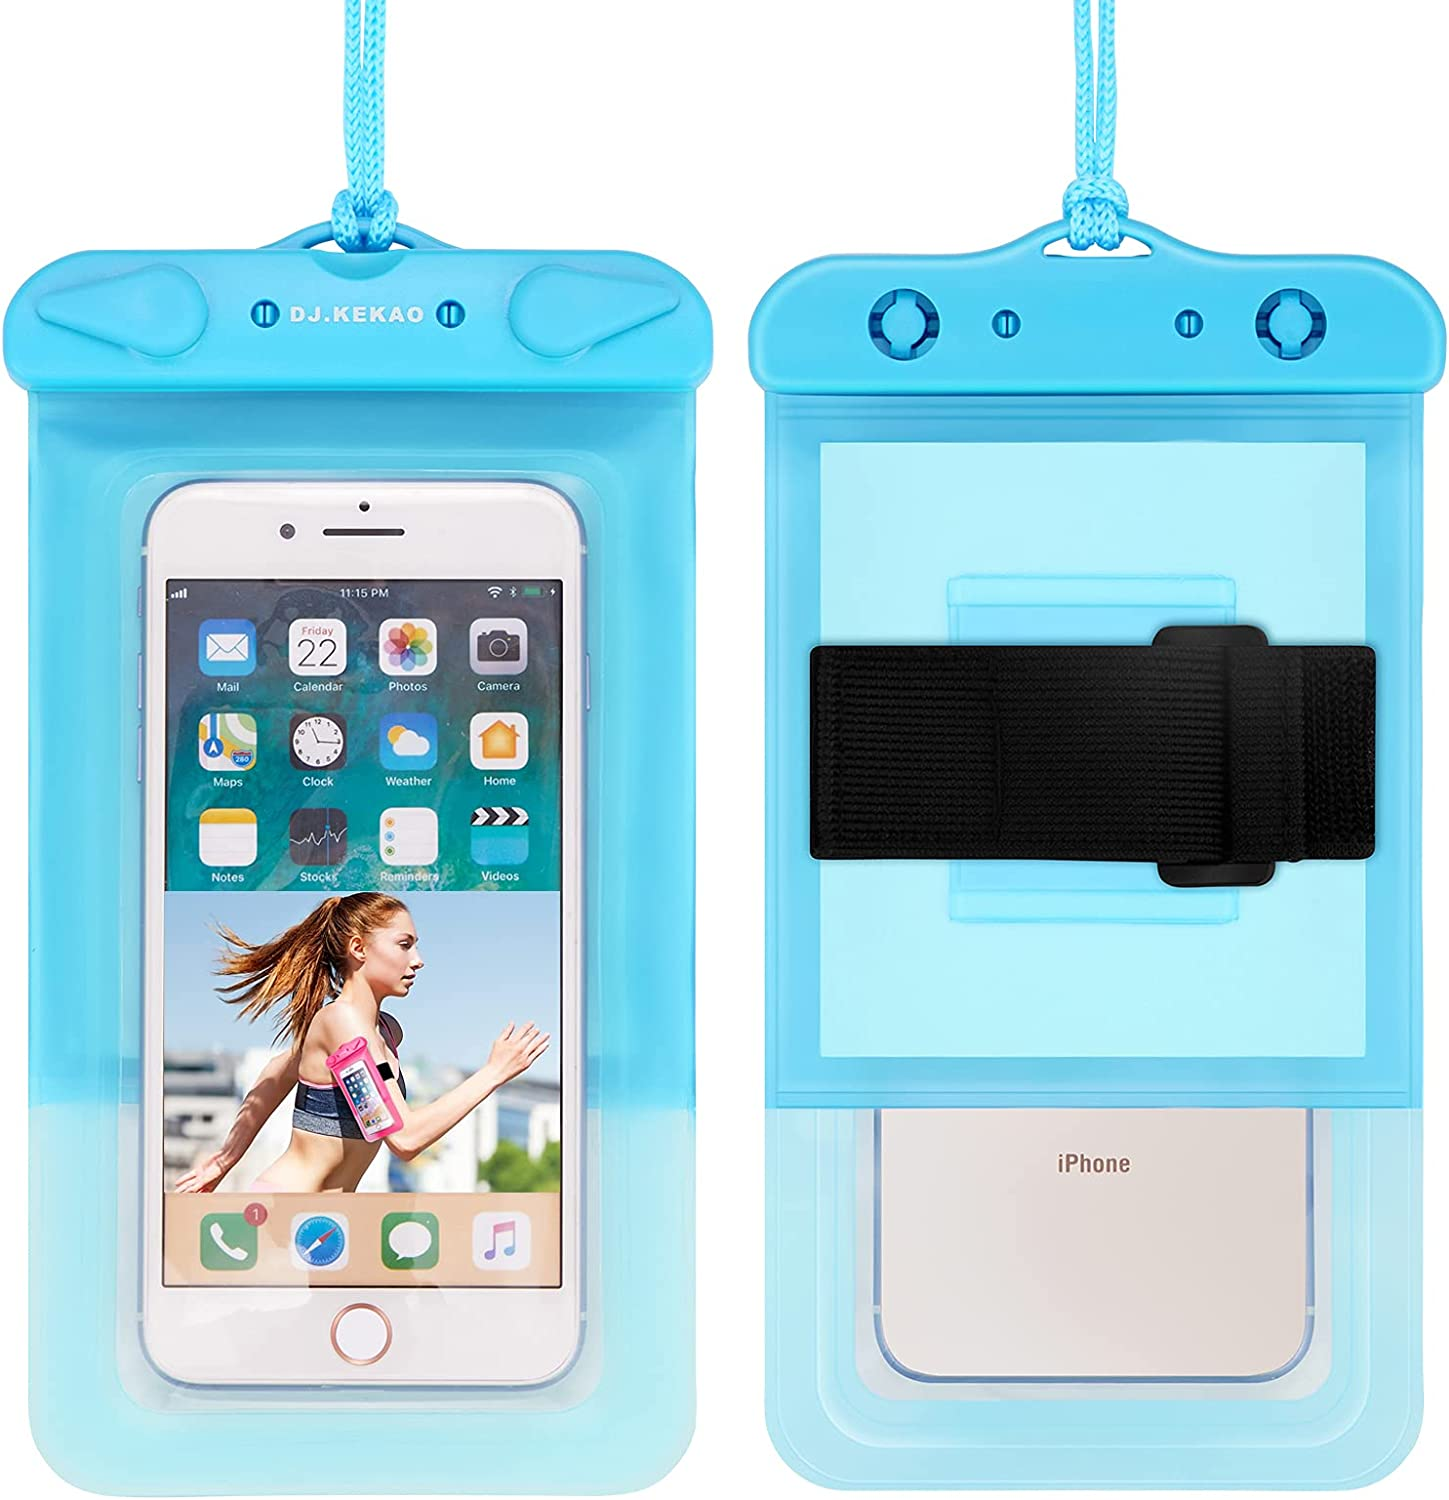 Waterproof Float Phone Pouch with Neck Trap and Armband, Waterproof Phone case, Dry Bag Outdoor Beach Bag for iPhone 12 Samsung Galaxy, and Other Phones Up to 6.9'' (Blue)